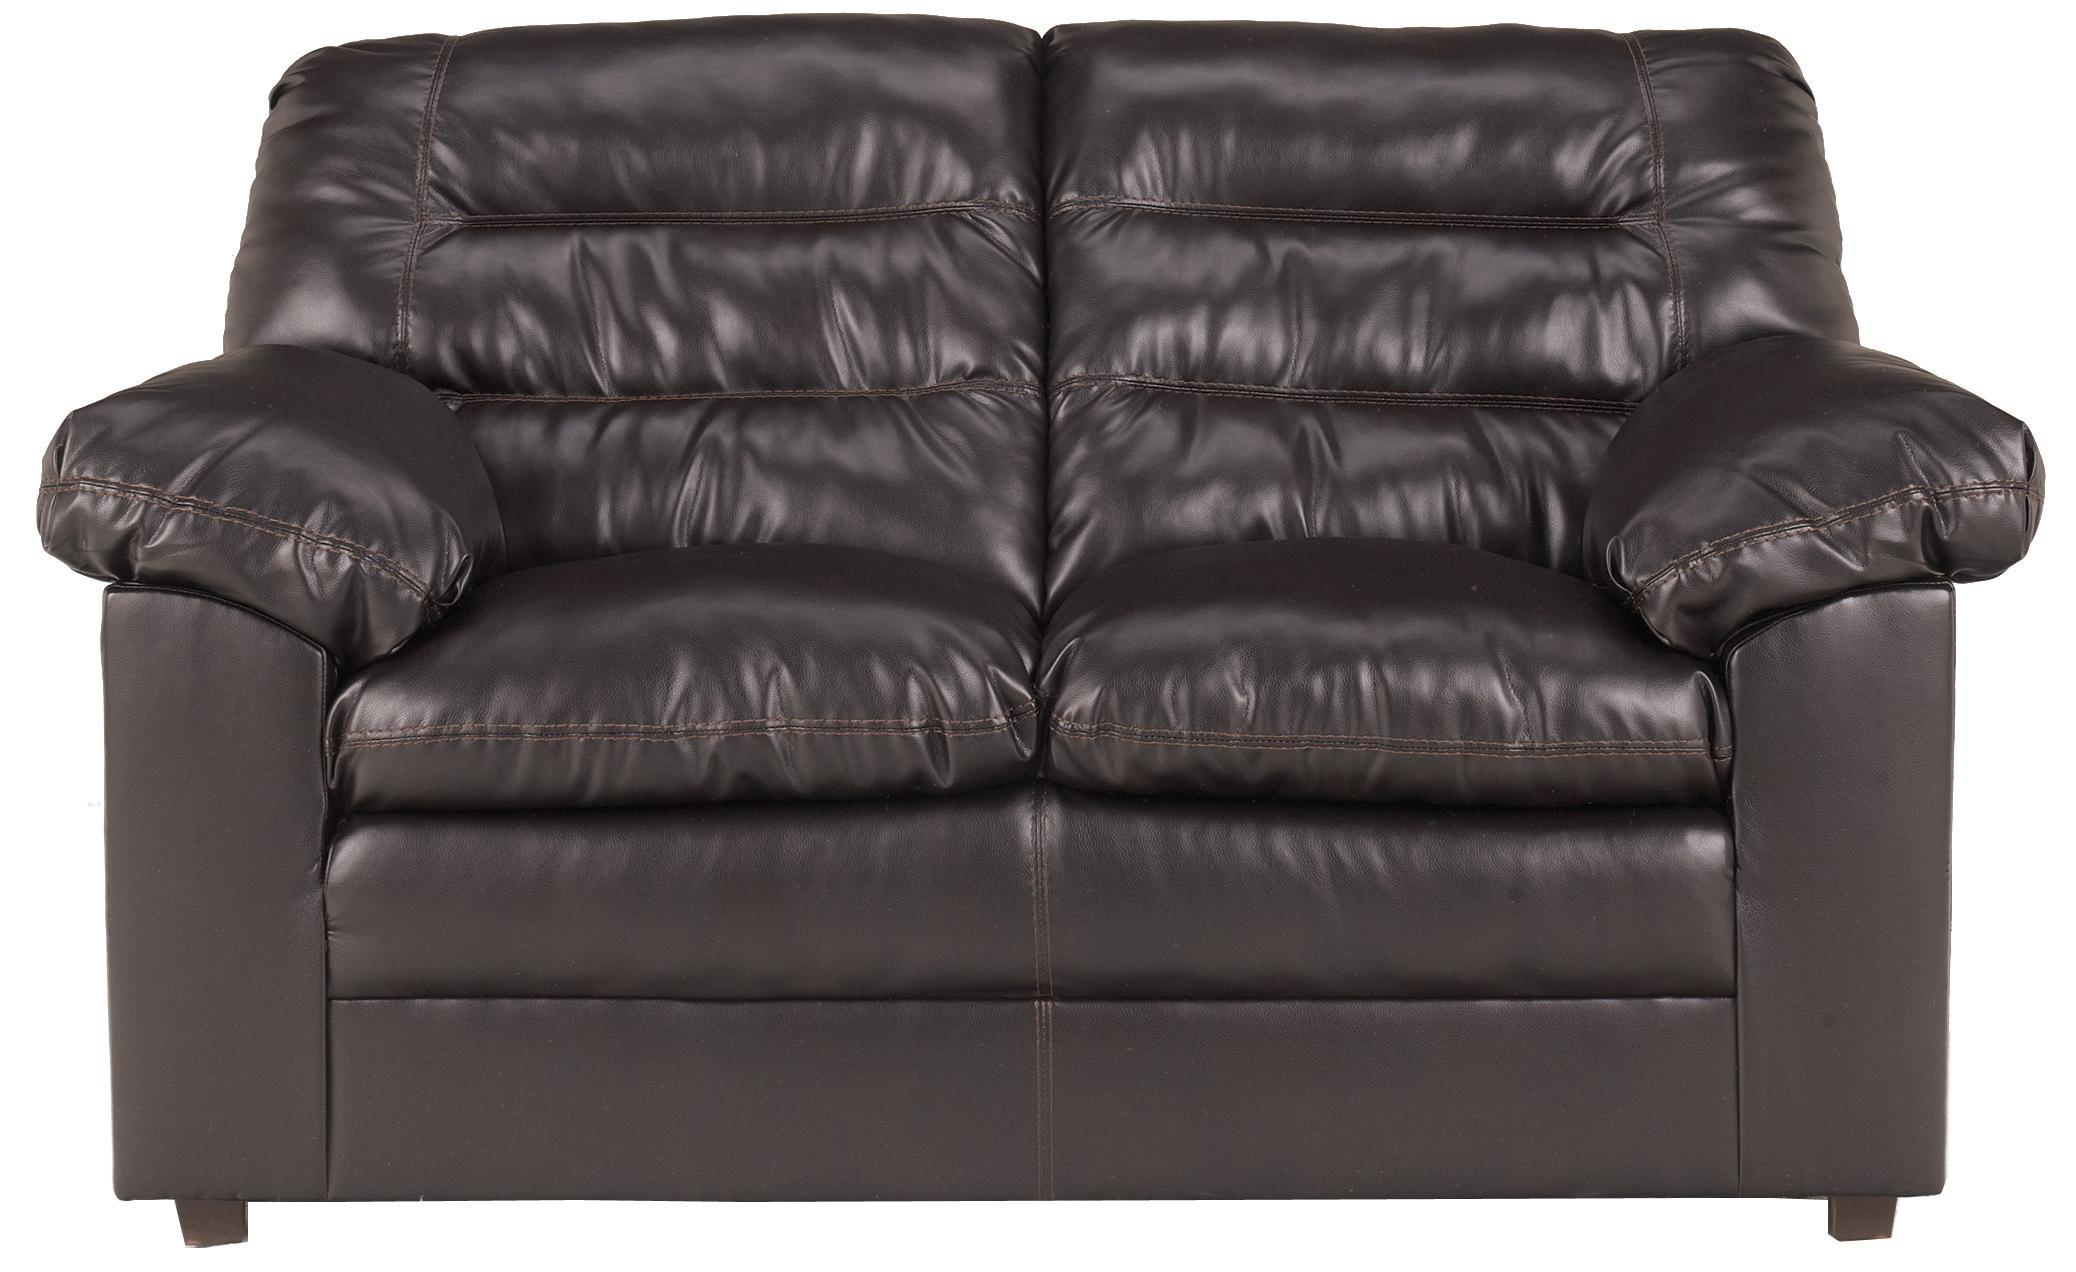 Millennium Knox DuraBlend - Coffee Loveseat - Item Number: 1320035